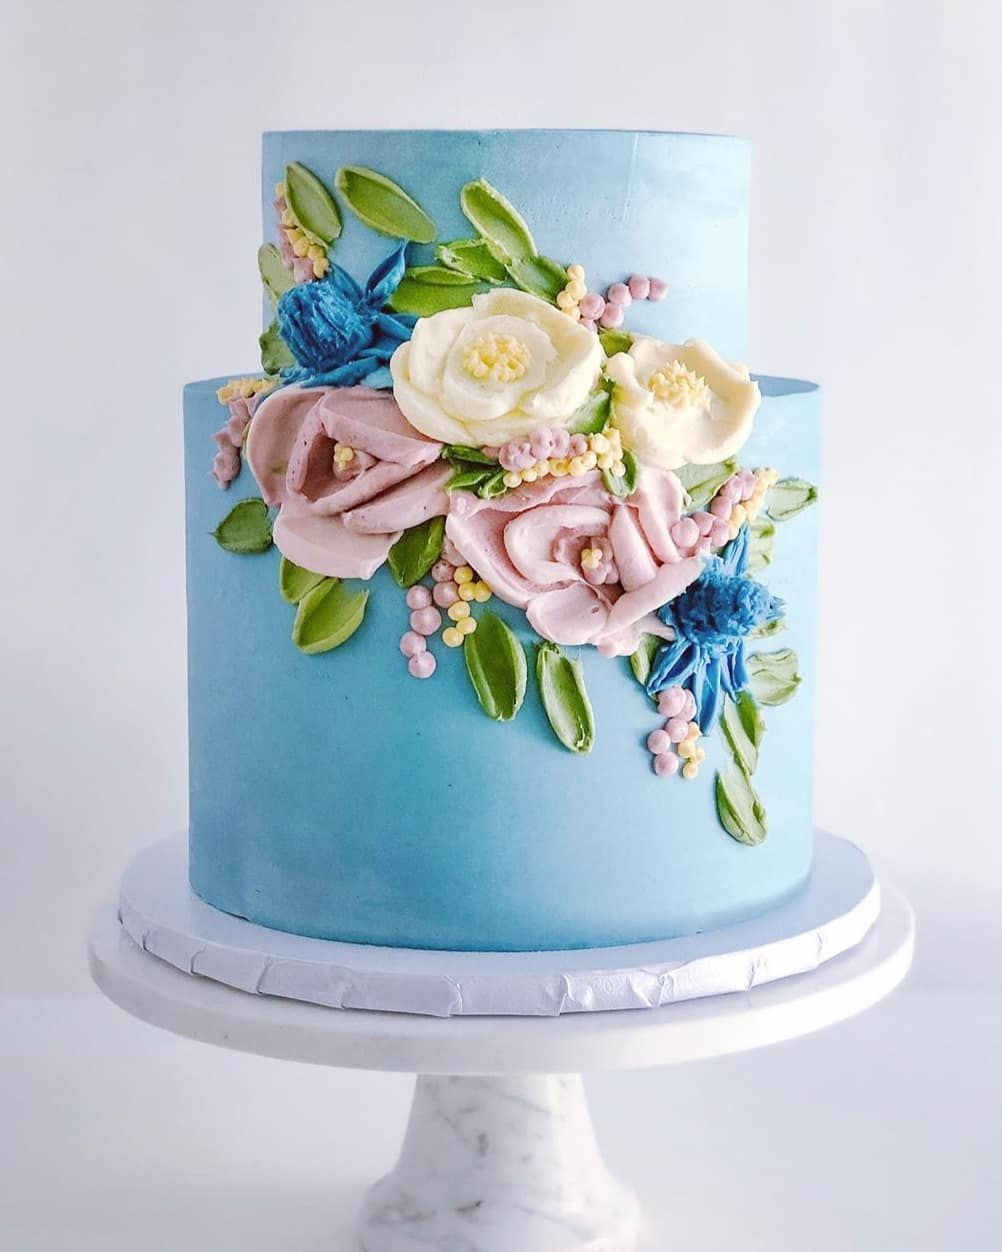 216 Likes 1 Comments Sugar Inspired Trends Sugar Inspired Trends On Instagram Bu Mmmdessert In 2020 Wilton Cake Decorating Cake Wilton Cakes